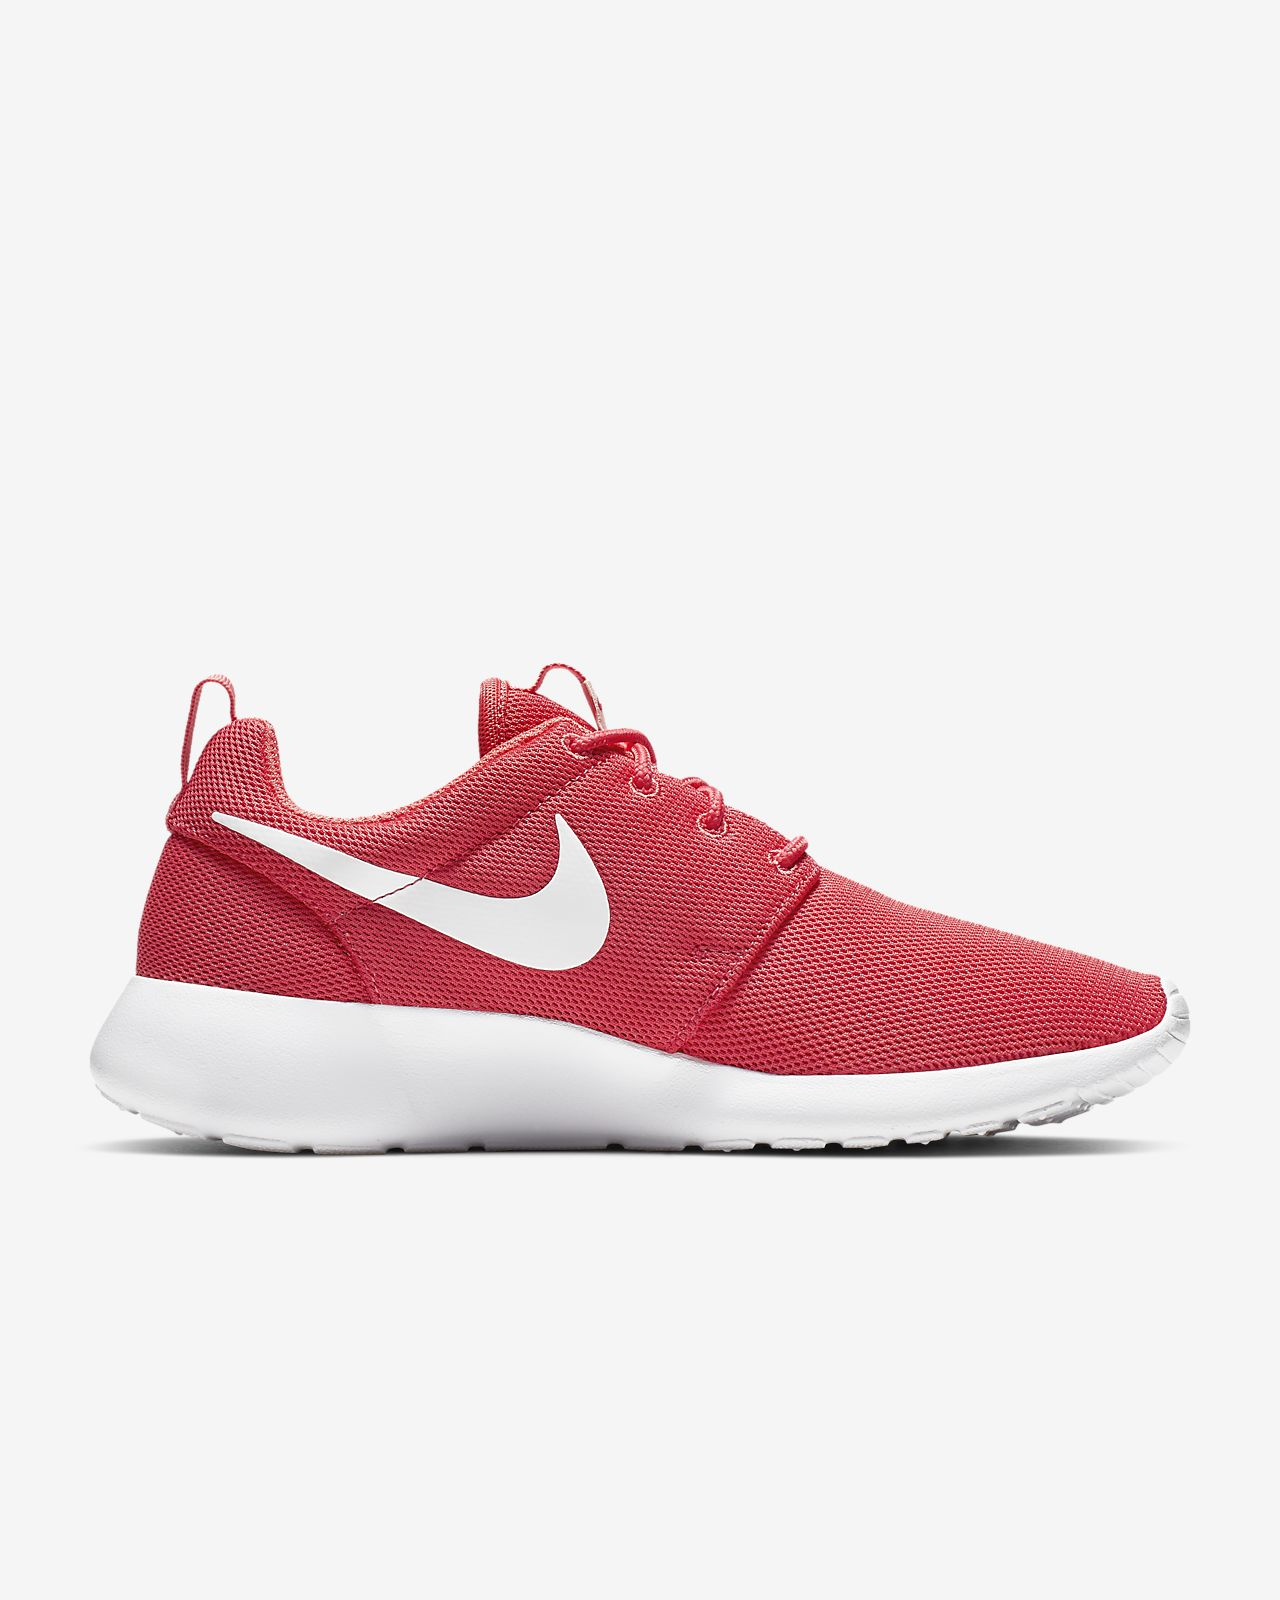 premium selection e6224 759fa ... Nike Roshe One Women s Shoe